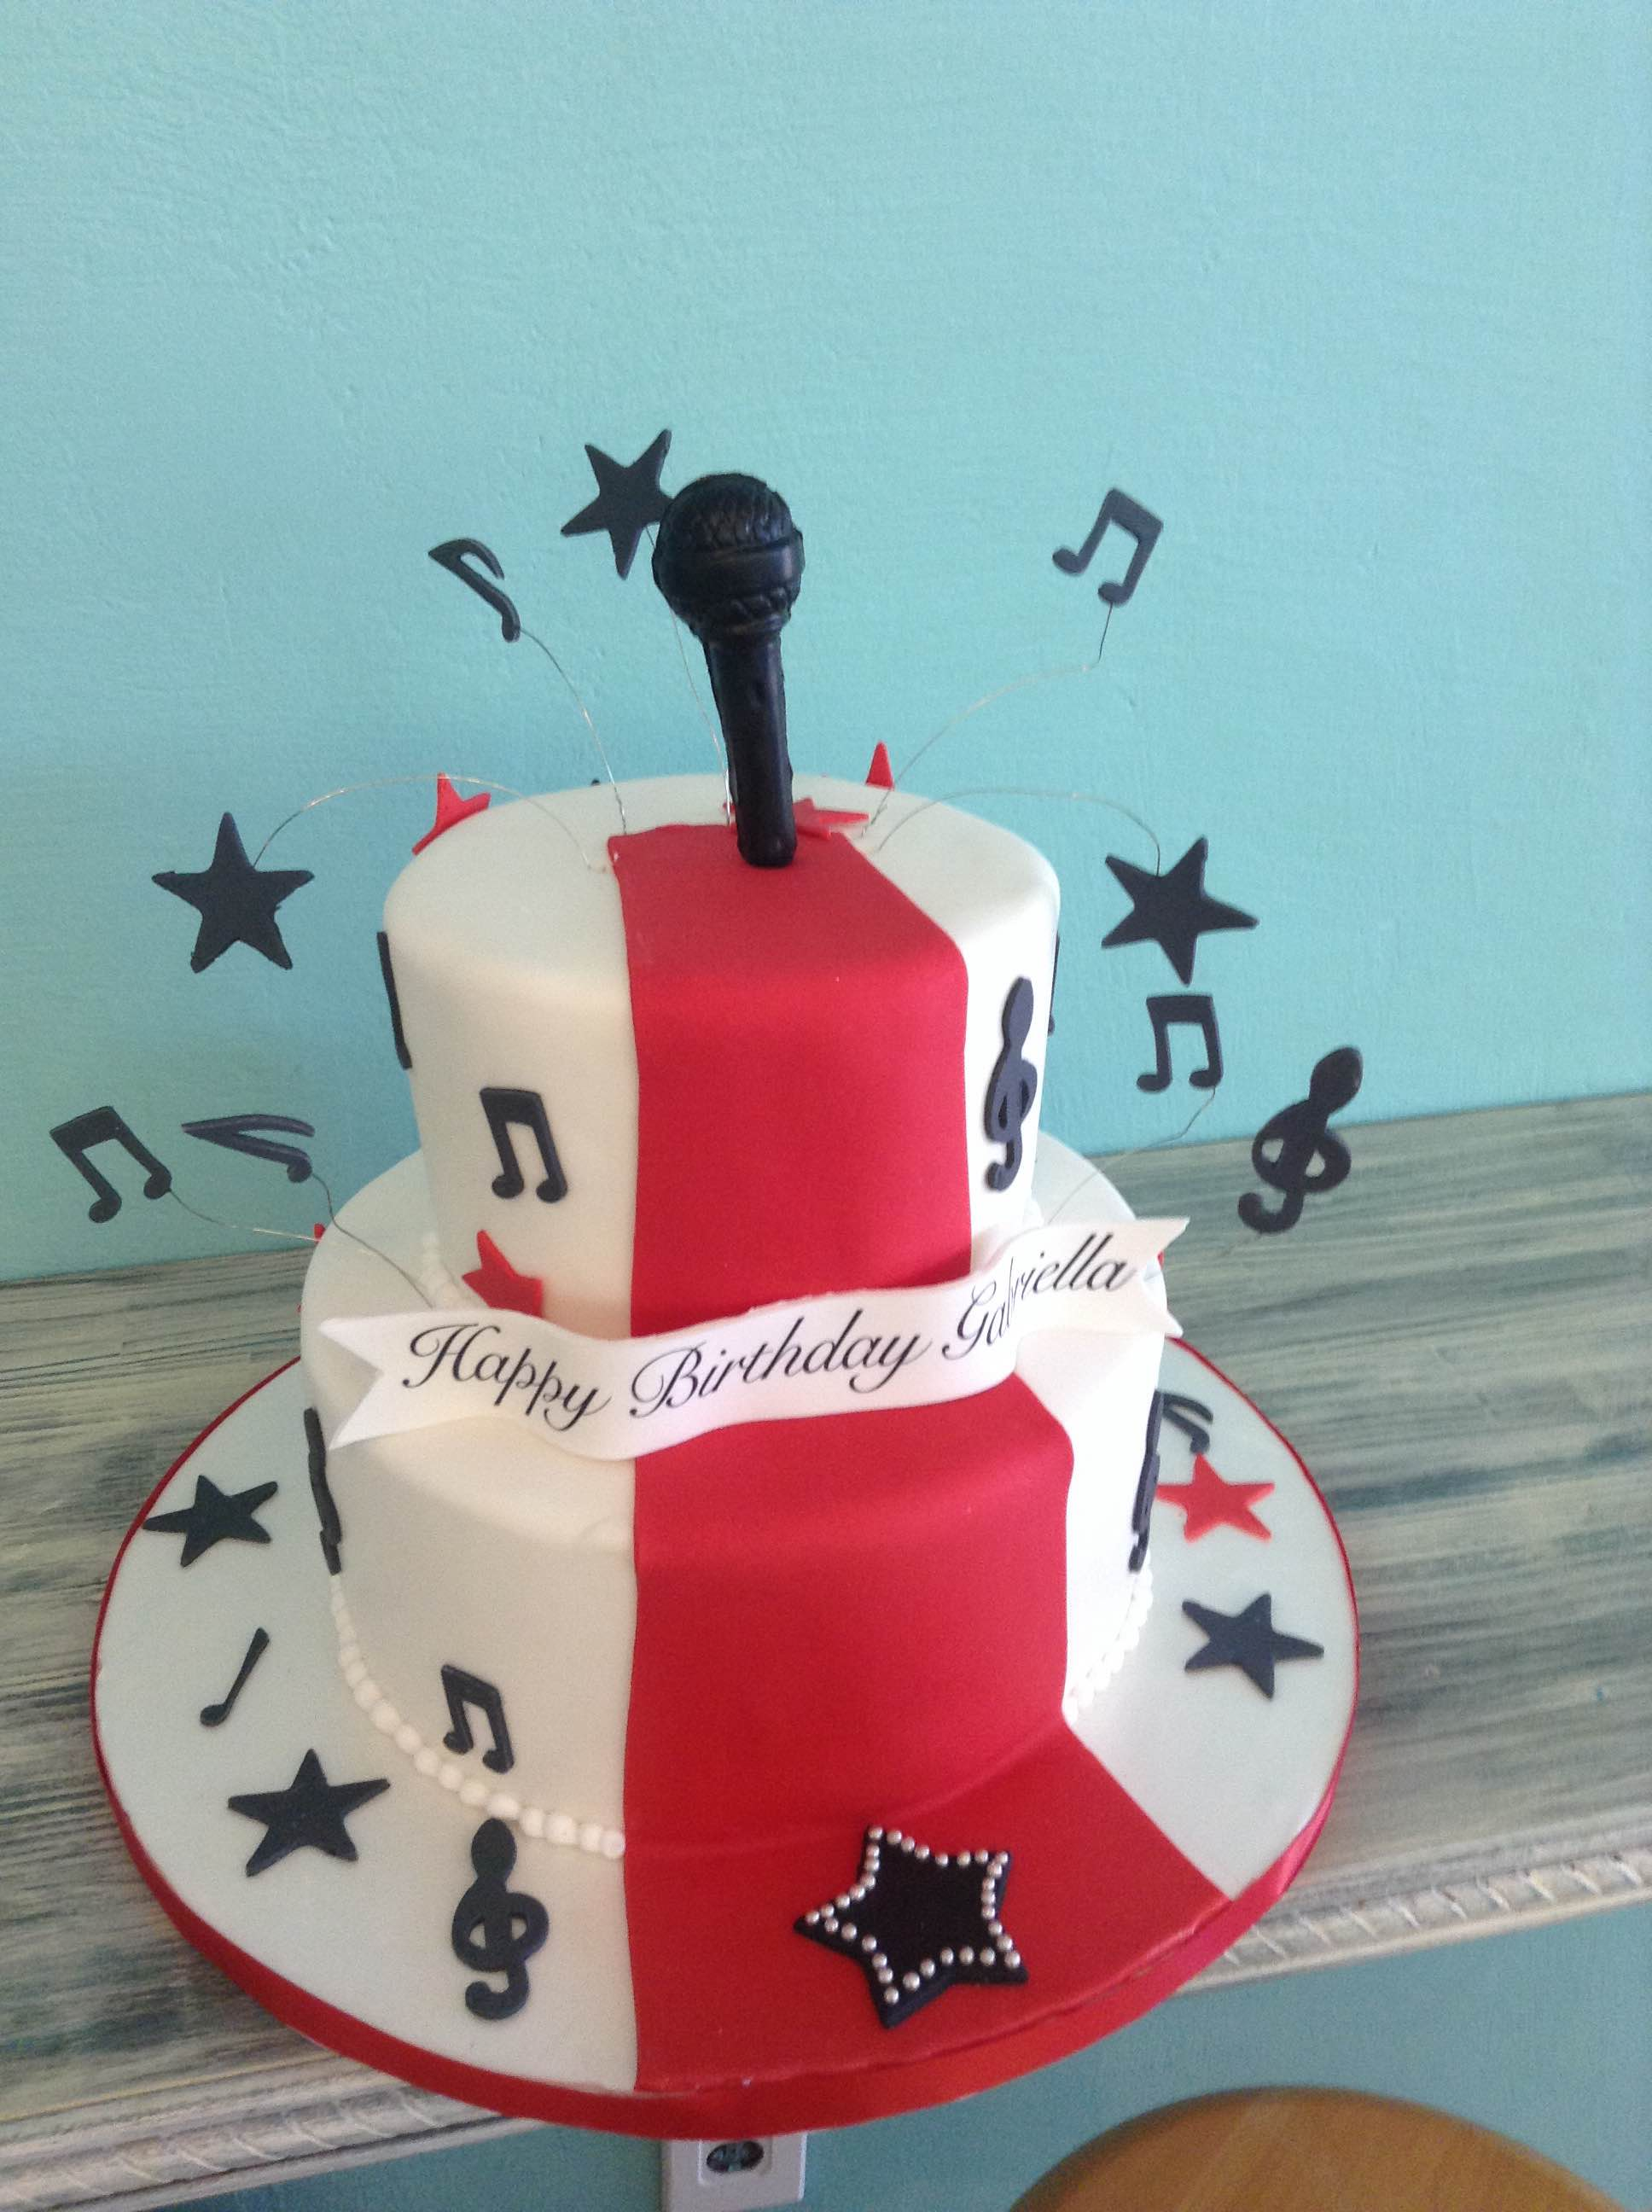 Everything Edible Musical Note Cake